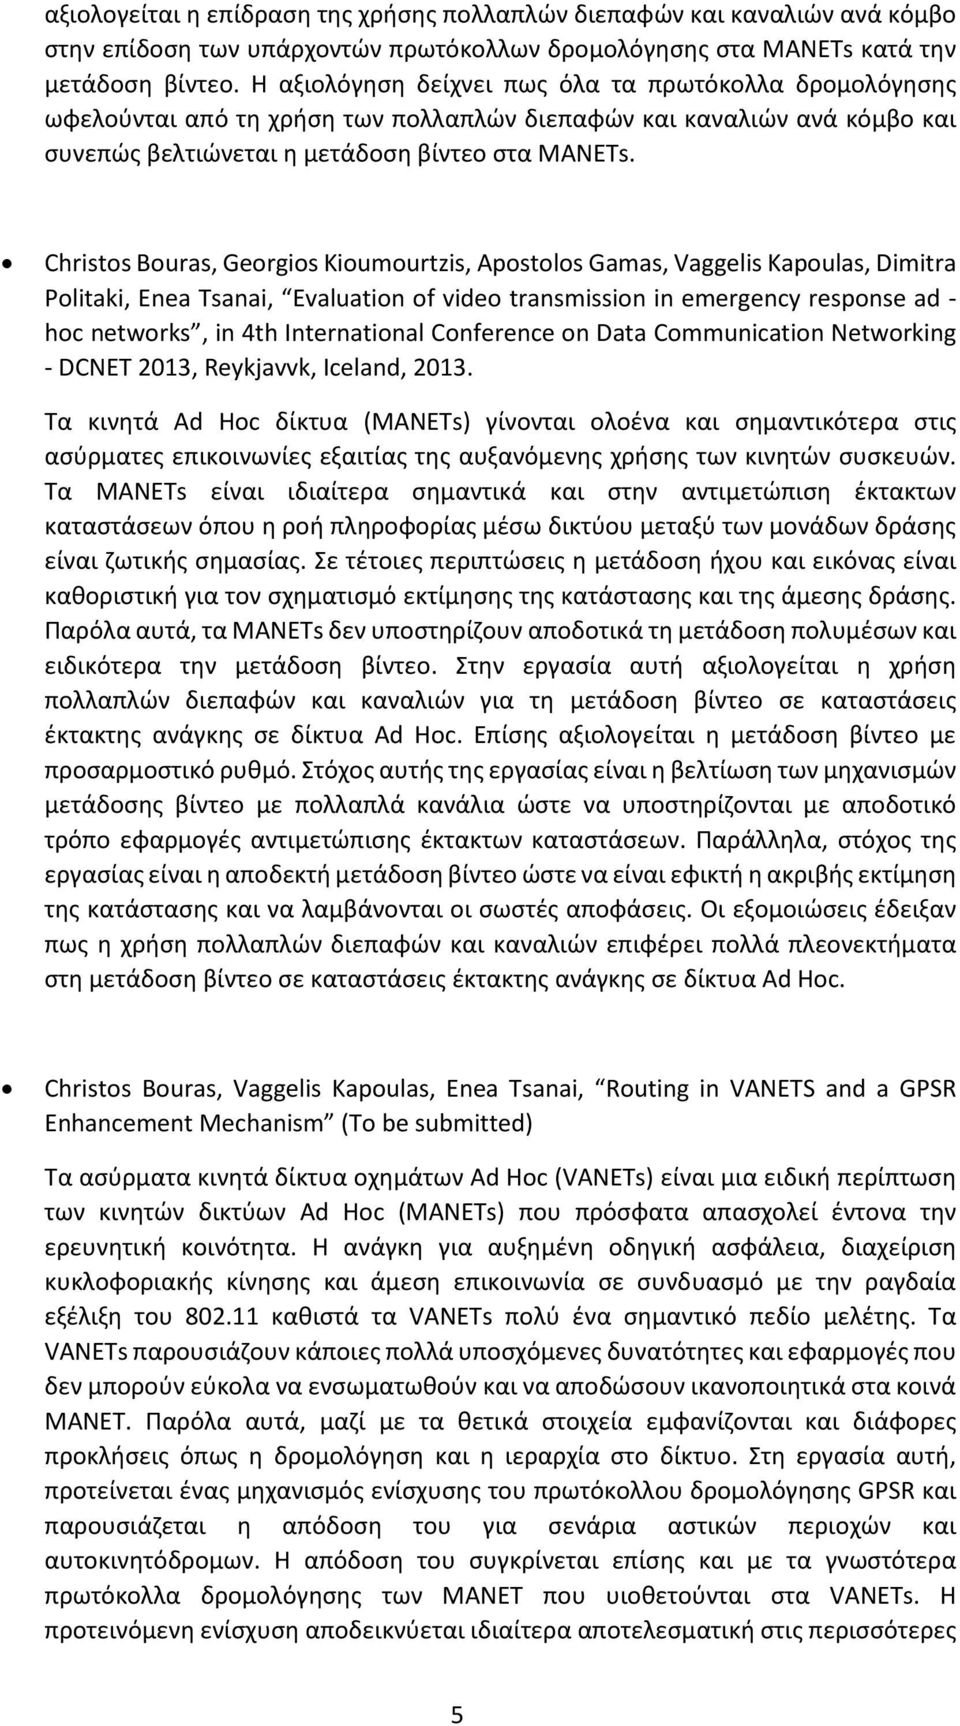 Christos Bouras, Georgios Kioumourtzis, Apostolos Gamas, Vaggelis Kapoulas, Dimitra Politaki, Enea Tsanai, Evaluation of video transmission in emergency response ad - hoc networks, in 4th